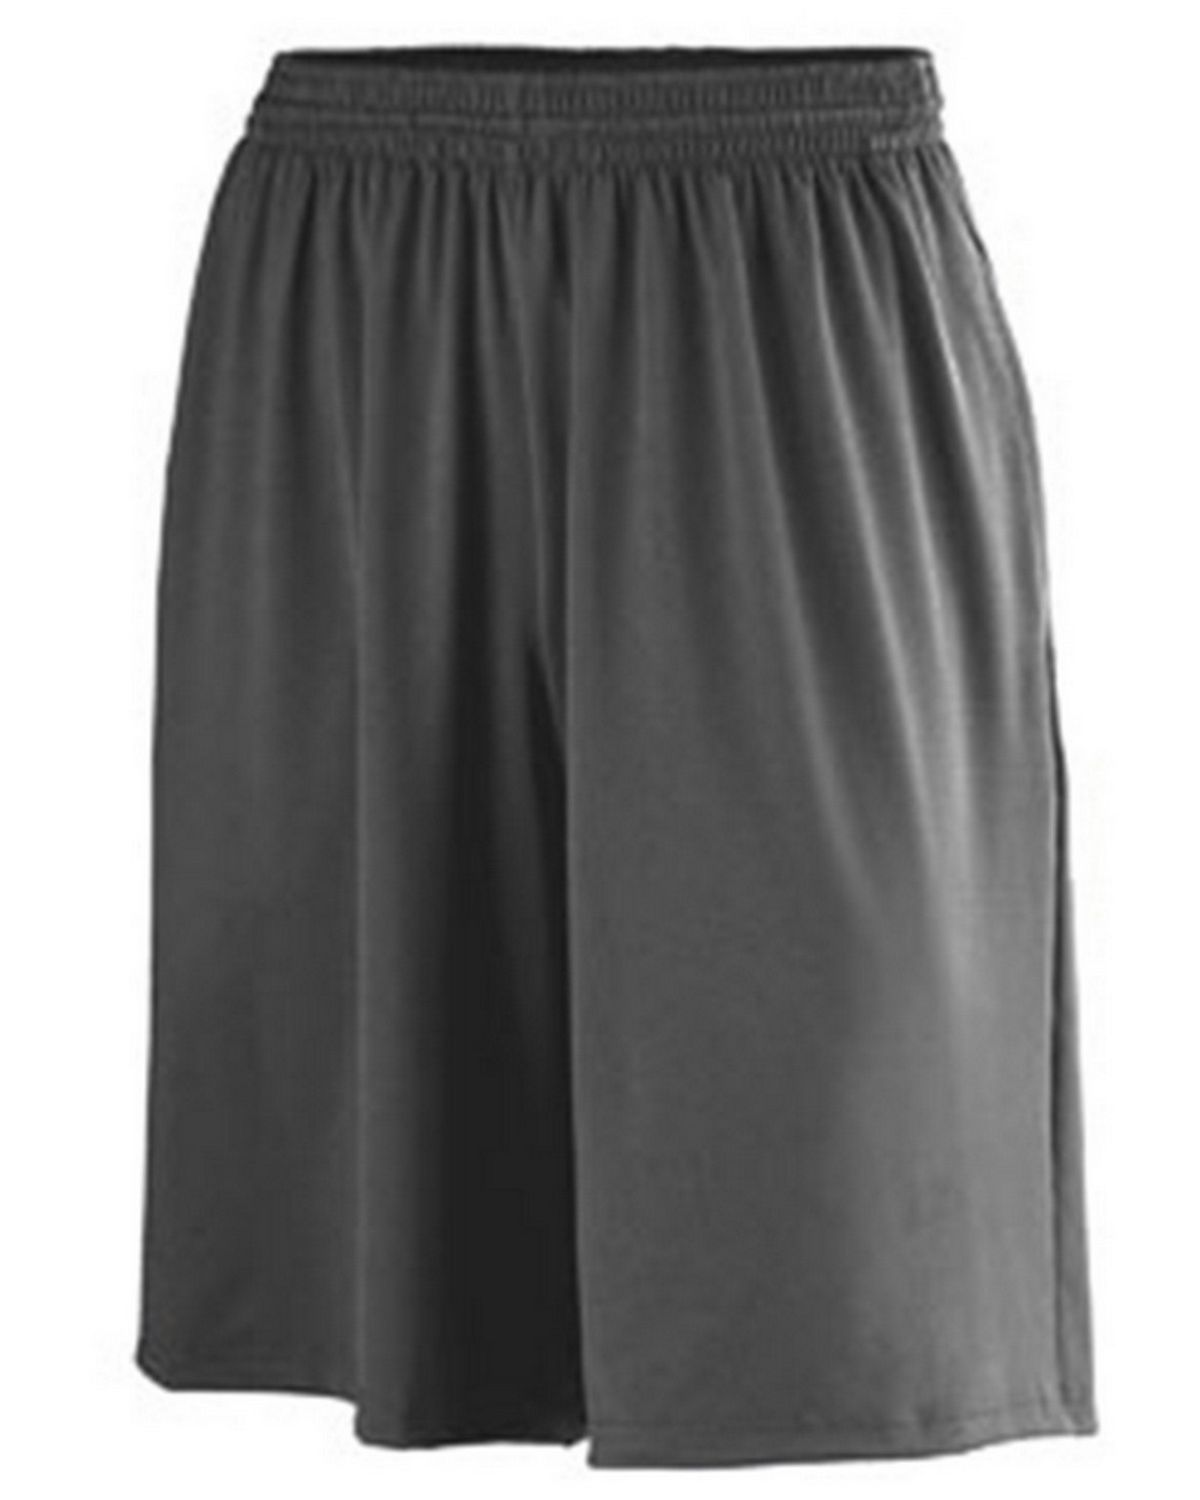 Augusta Sportswear AG949 Adult Polyester/Spandex Short with Pockets